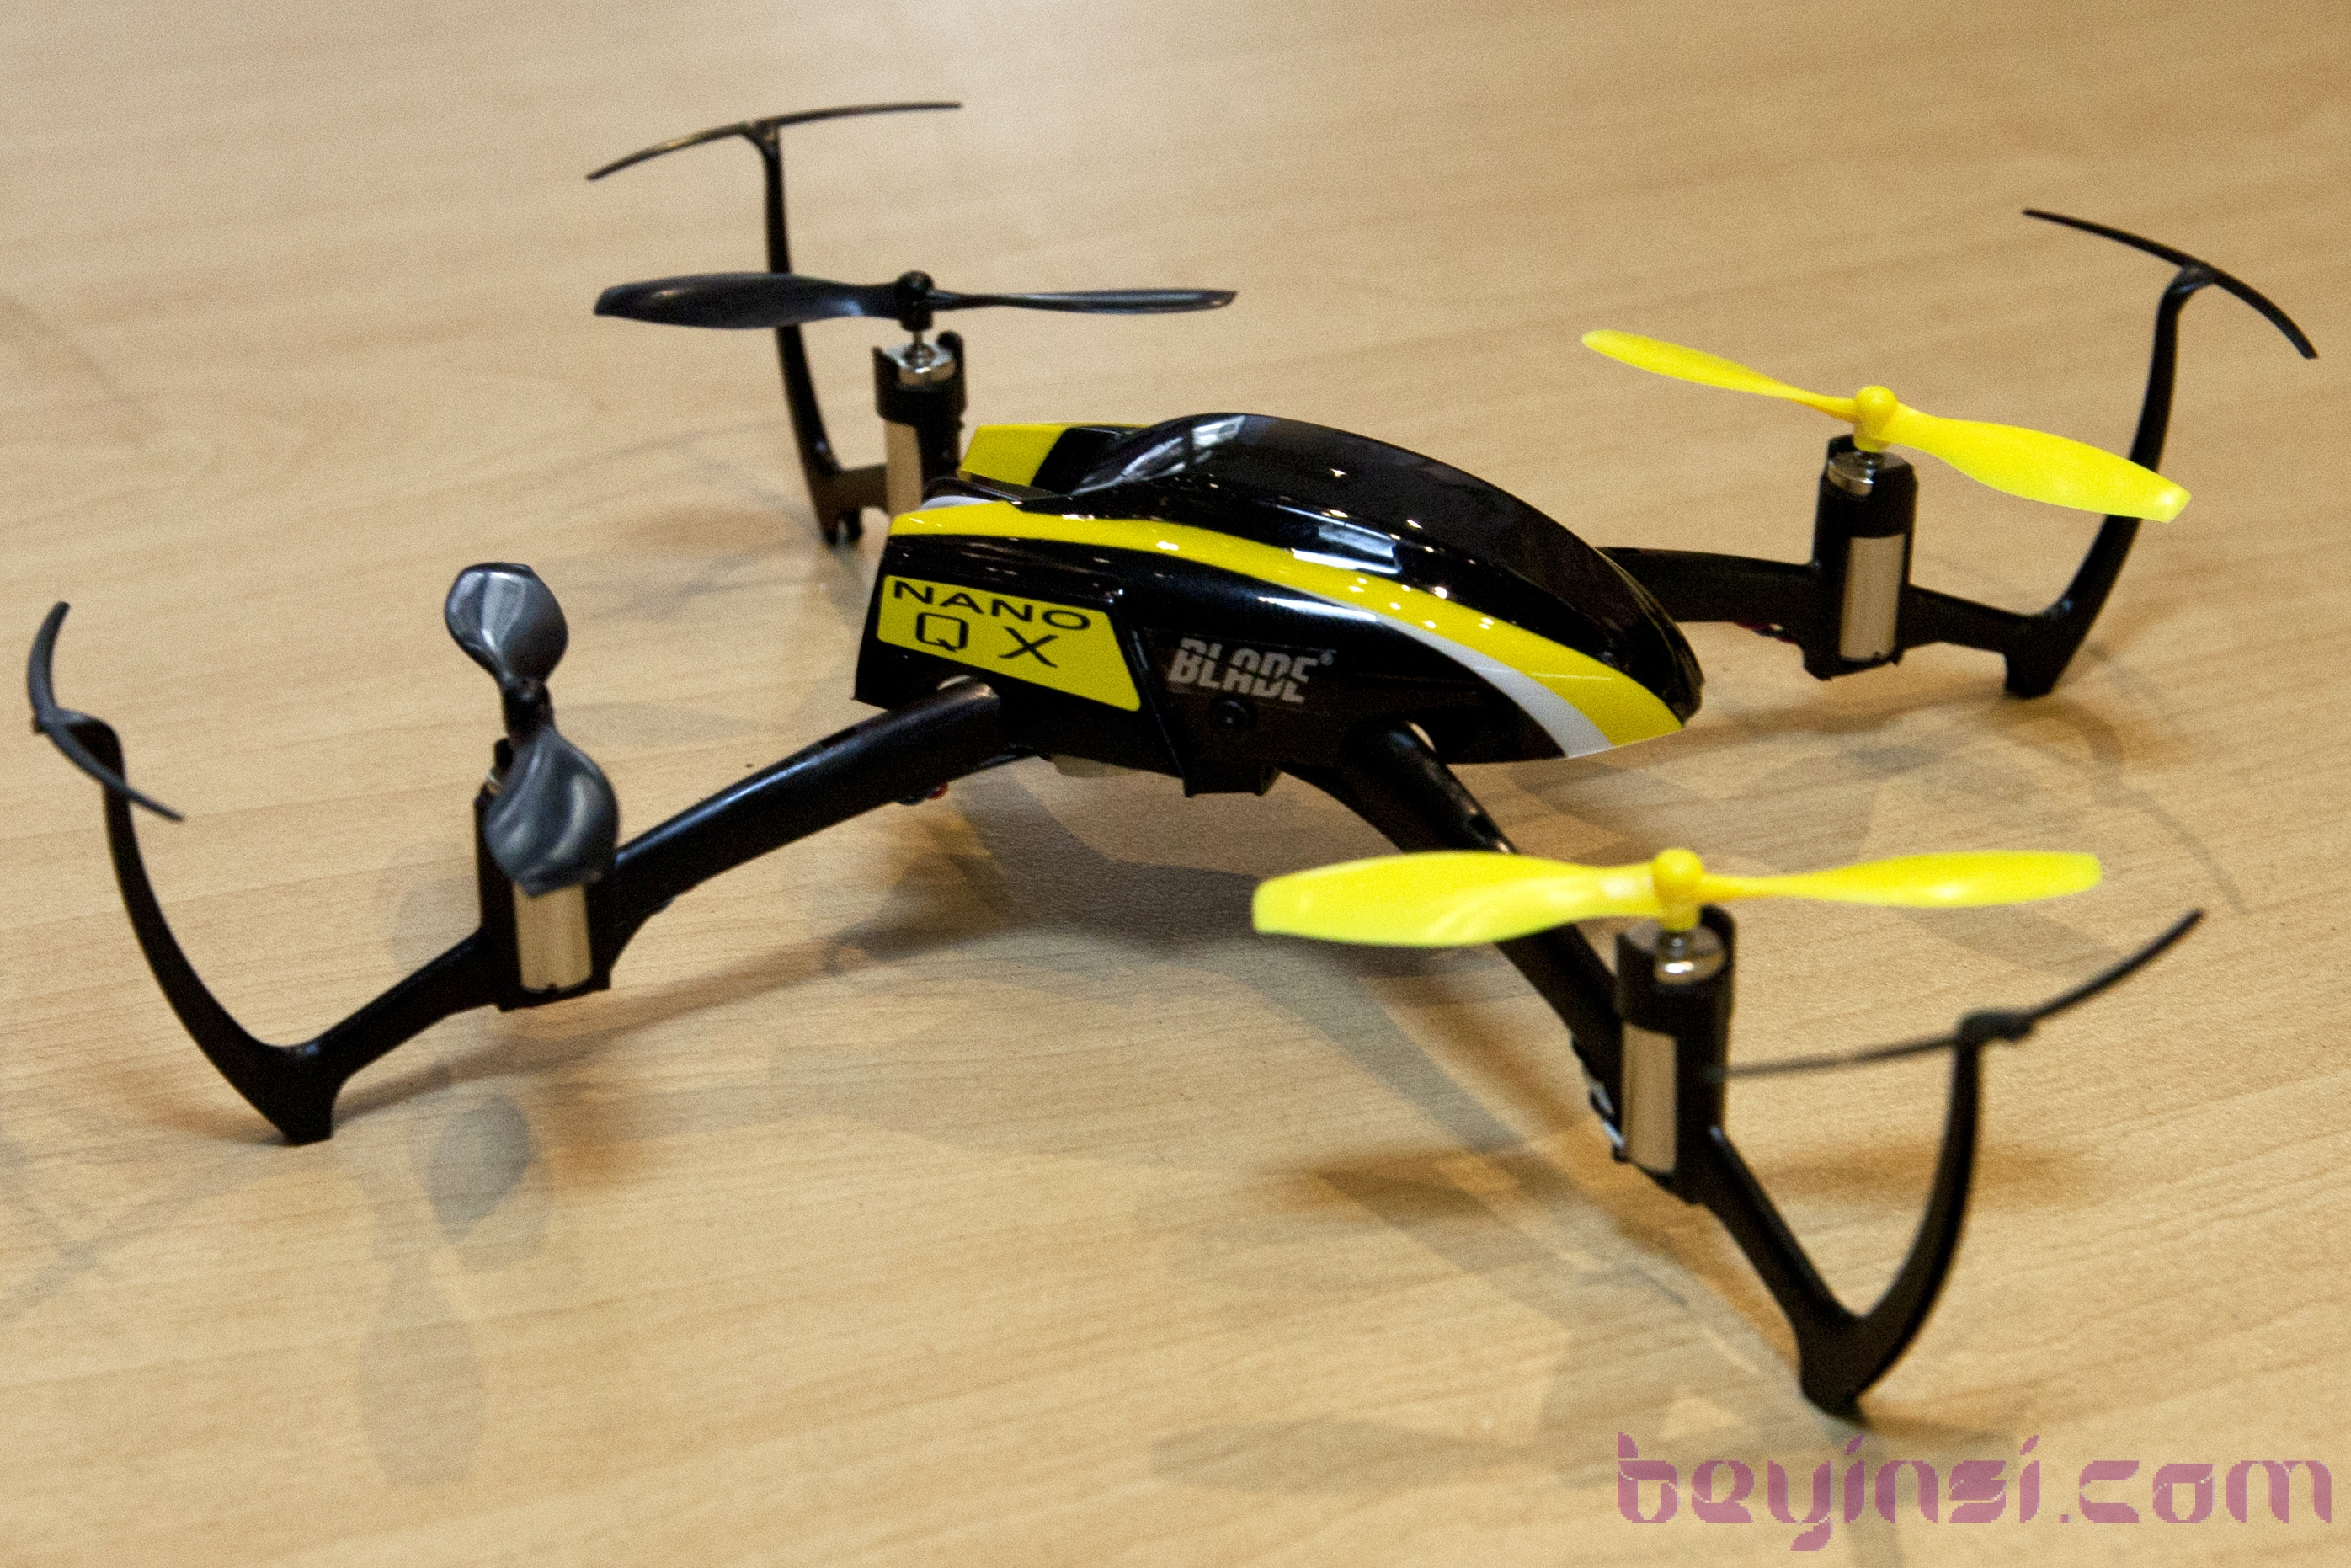 08/18/14 Features, Drone, the Nano QX, photographed at Pilotage Hobby, 389 5th Avenue, Manhattan. NY Post Brian Zak